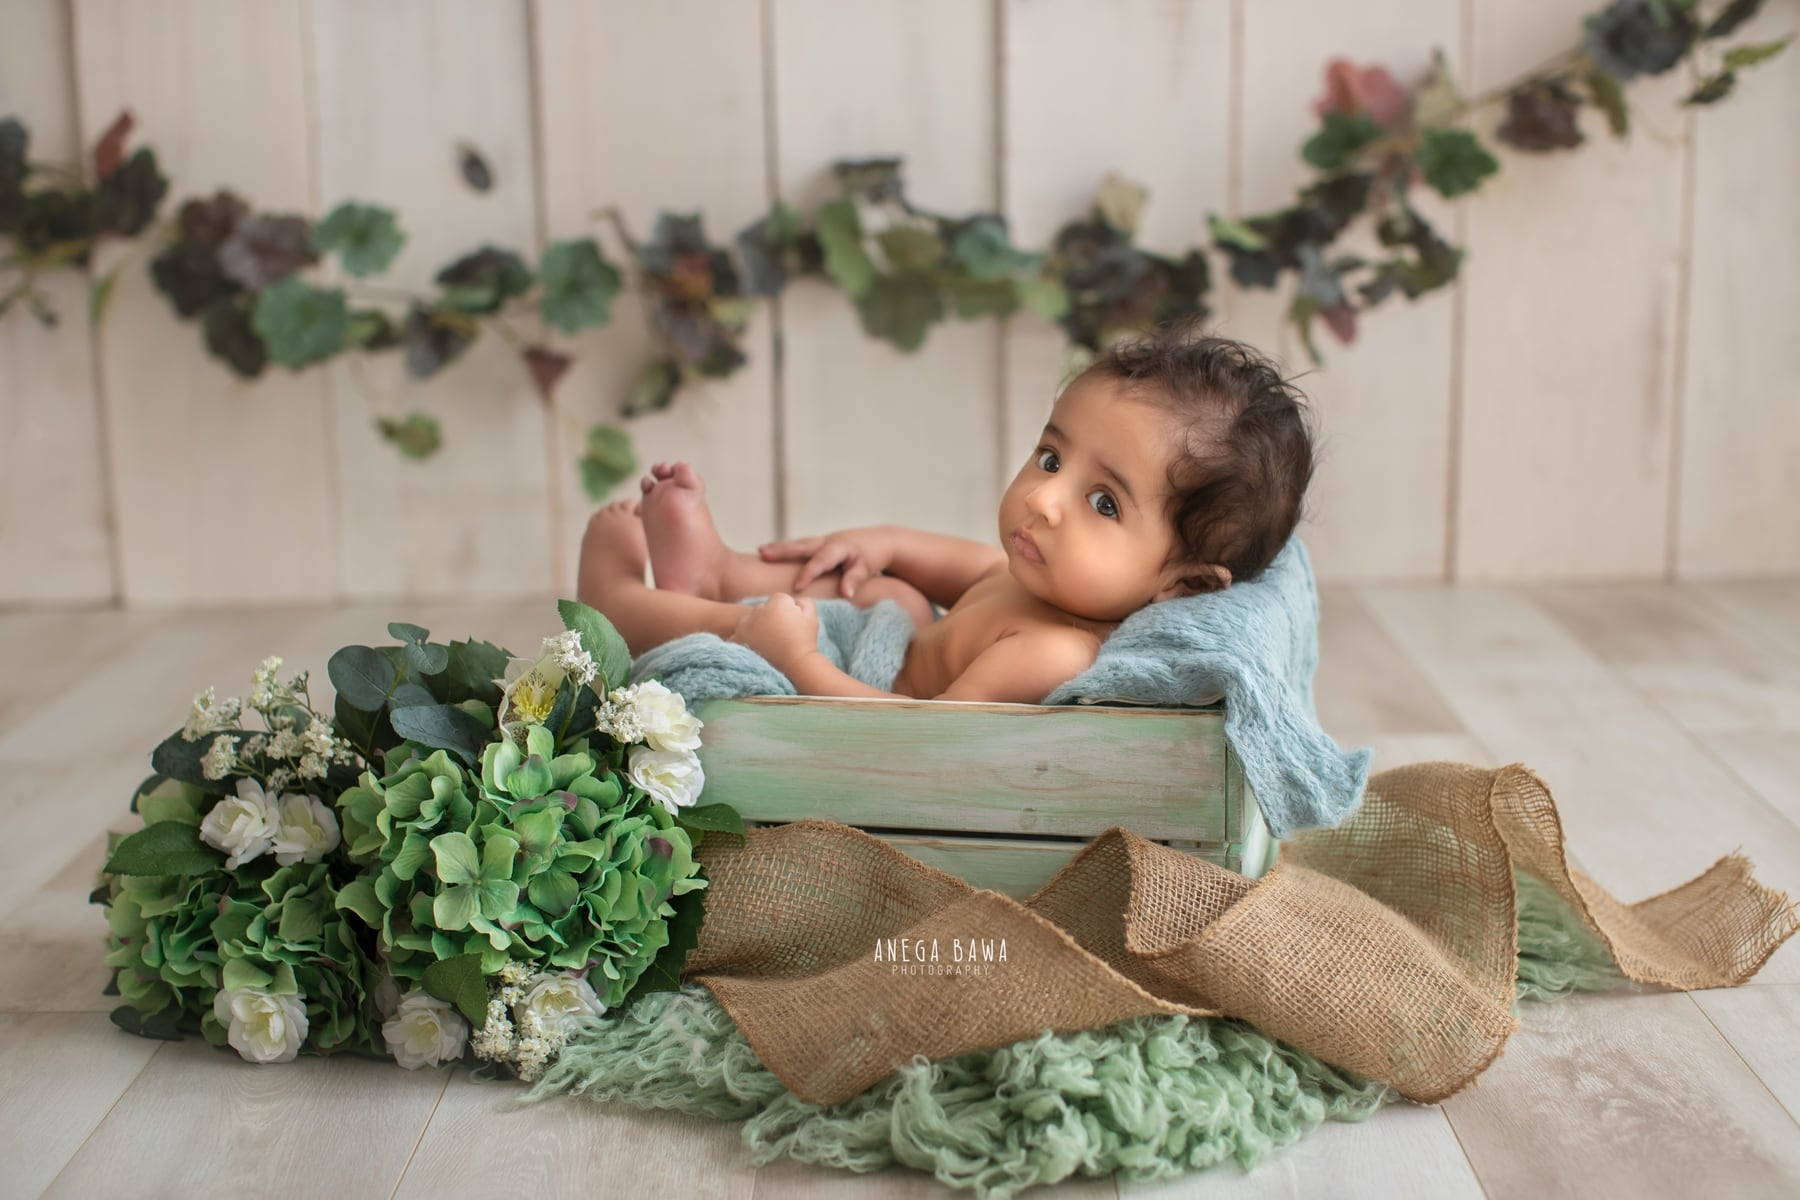 245601-white-wooden-background-green-floral-baby-photography-delhi-5-6-7-months-baby-photoshoot-gurgaon-anega-bawa